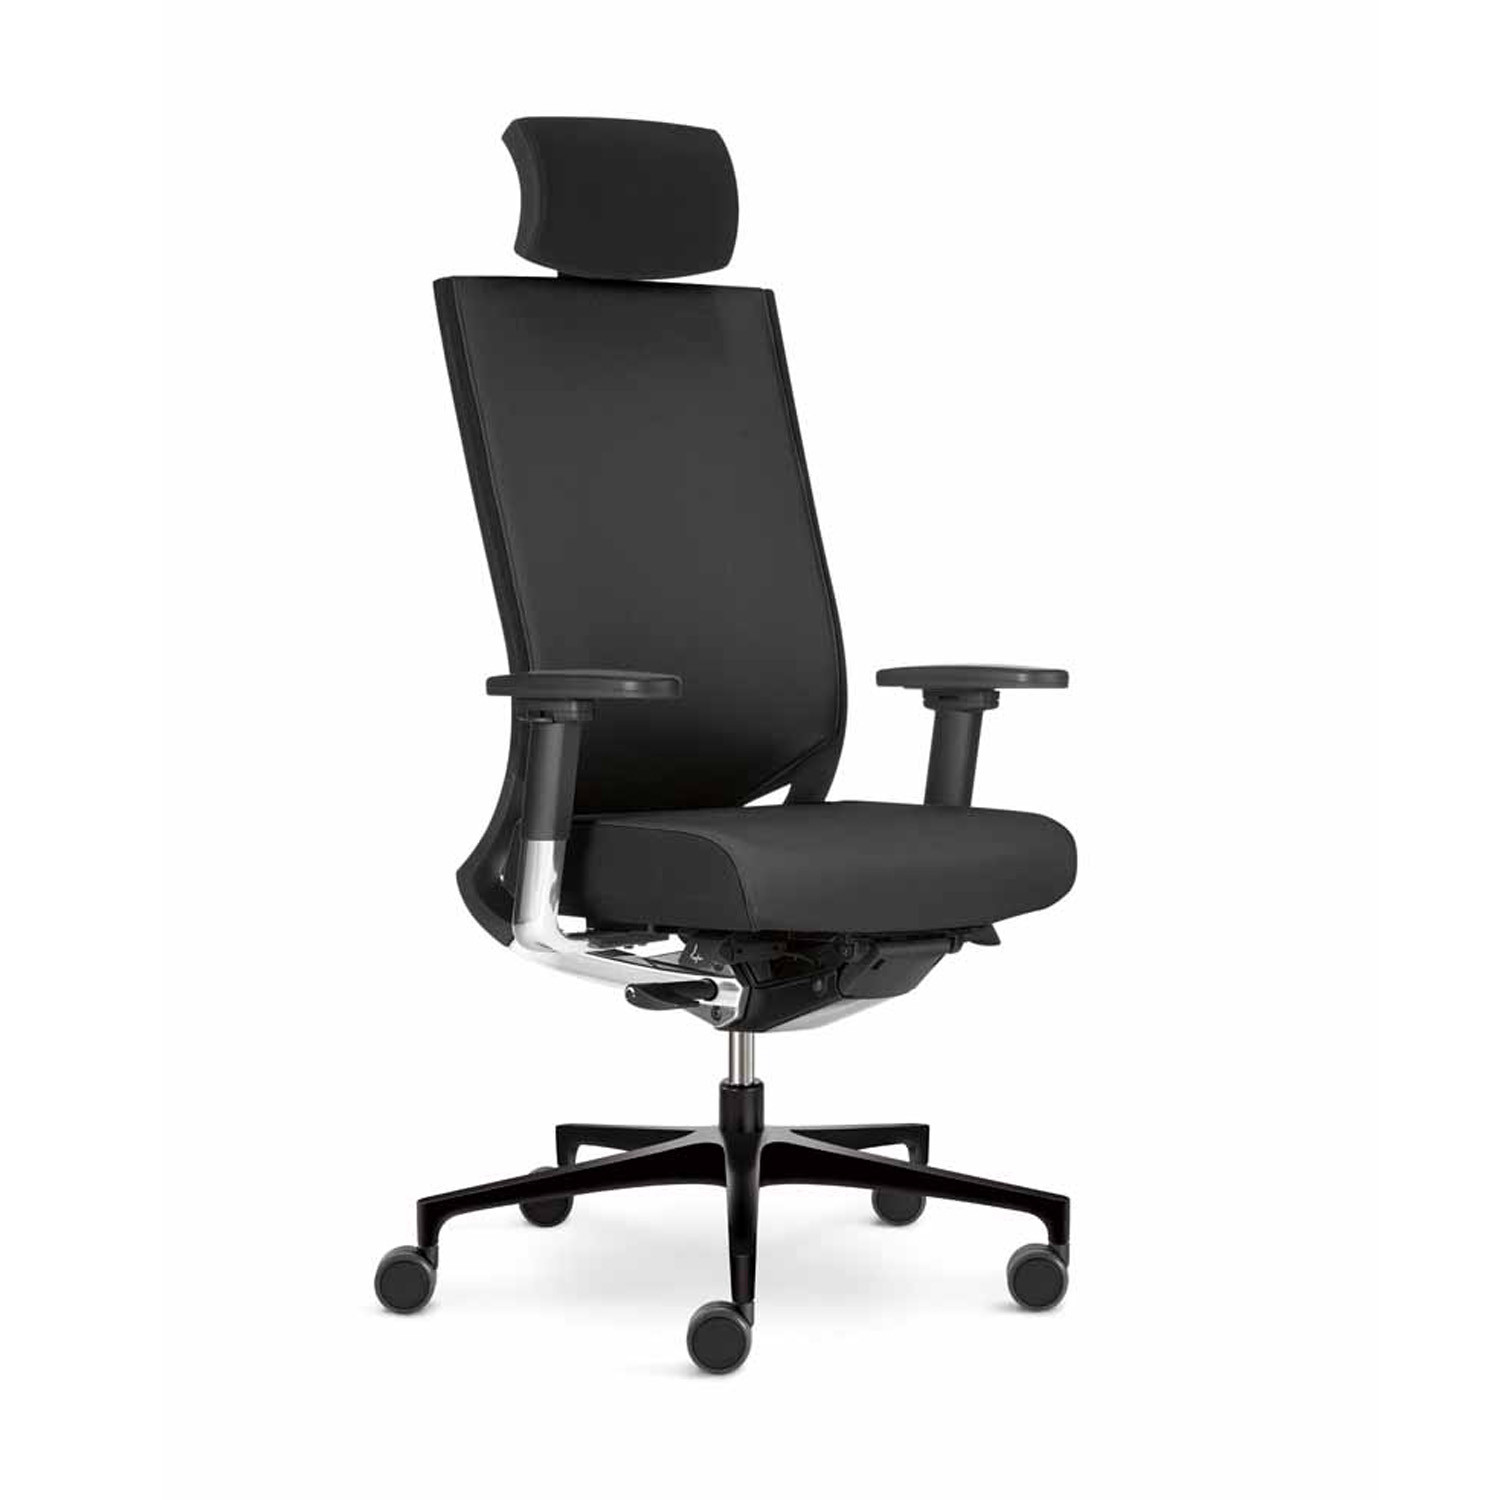 neck support for office chair india tony montana duera 24h task ergonomic chairs apres